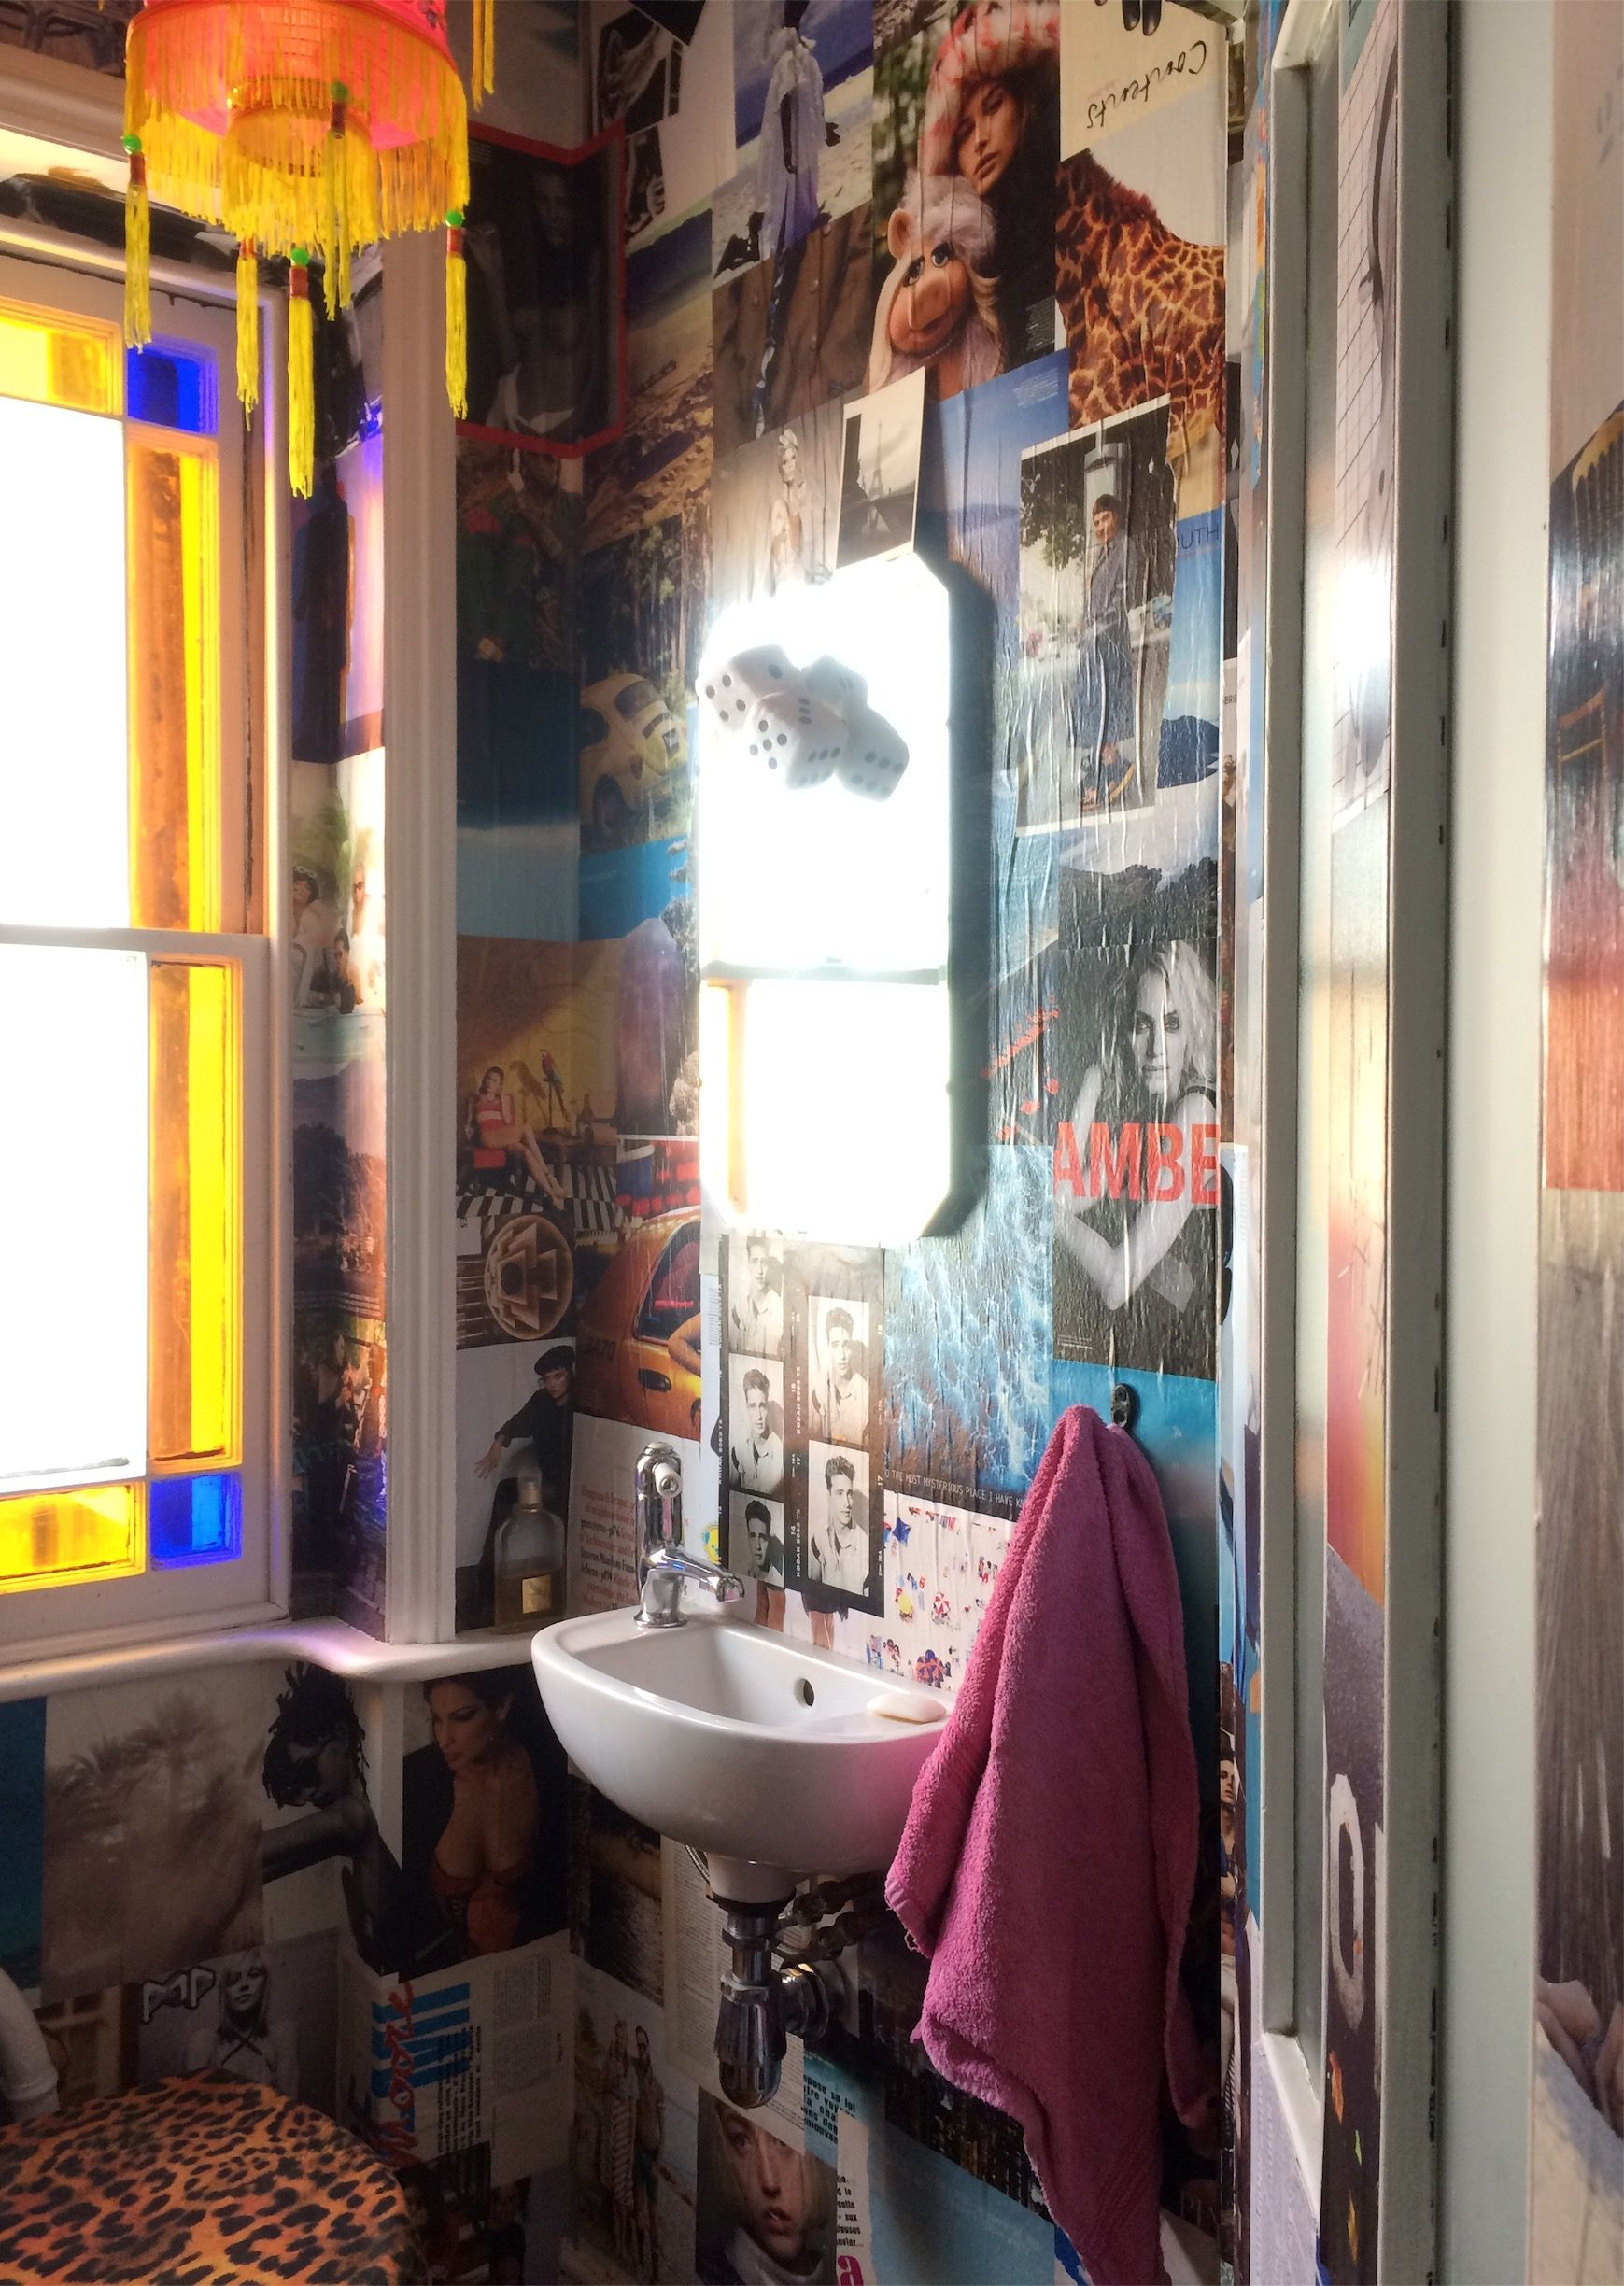 Decoupage Powder Room In Nineteenth Century Townhouse, Stained Glass, Leopard Print